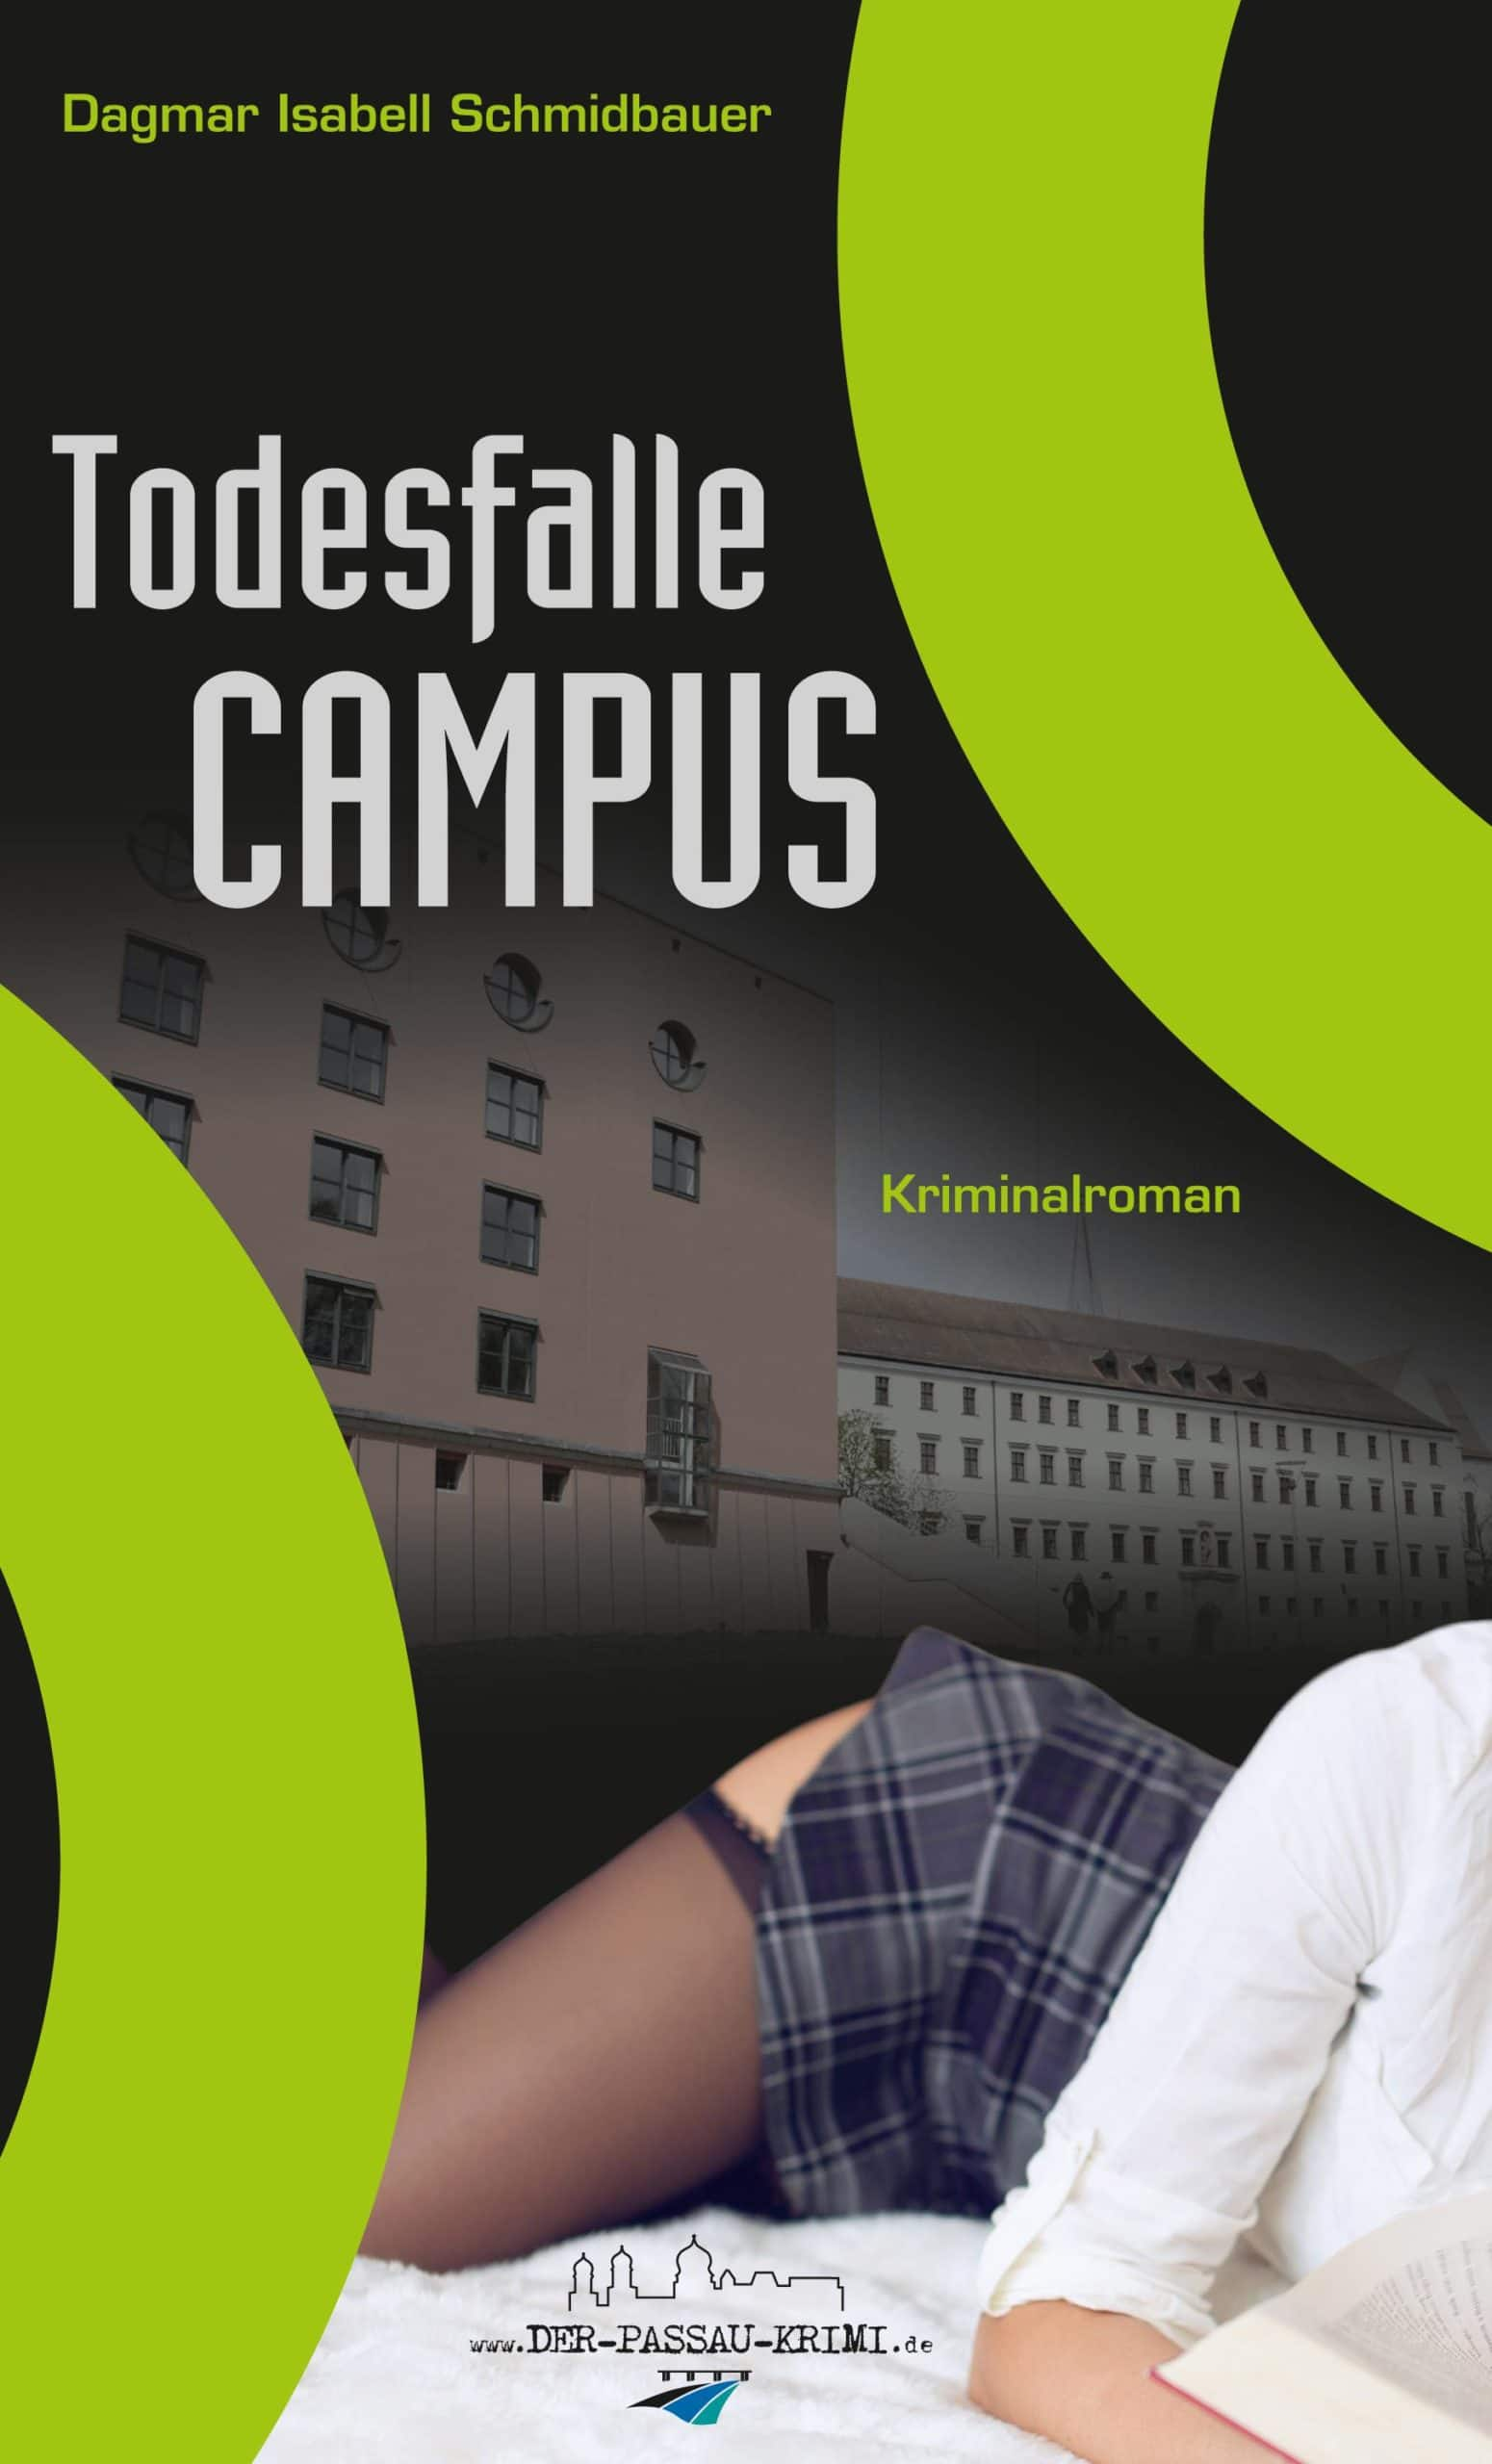 Todesfalle Campus scaled